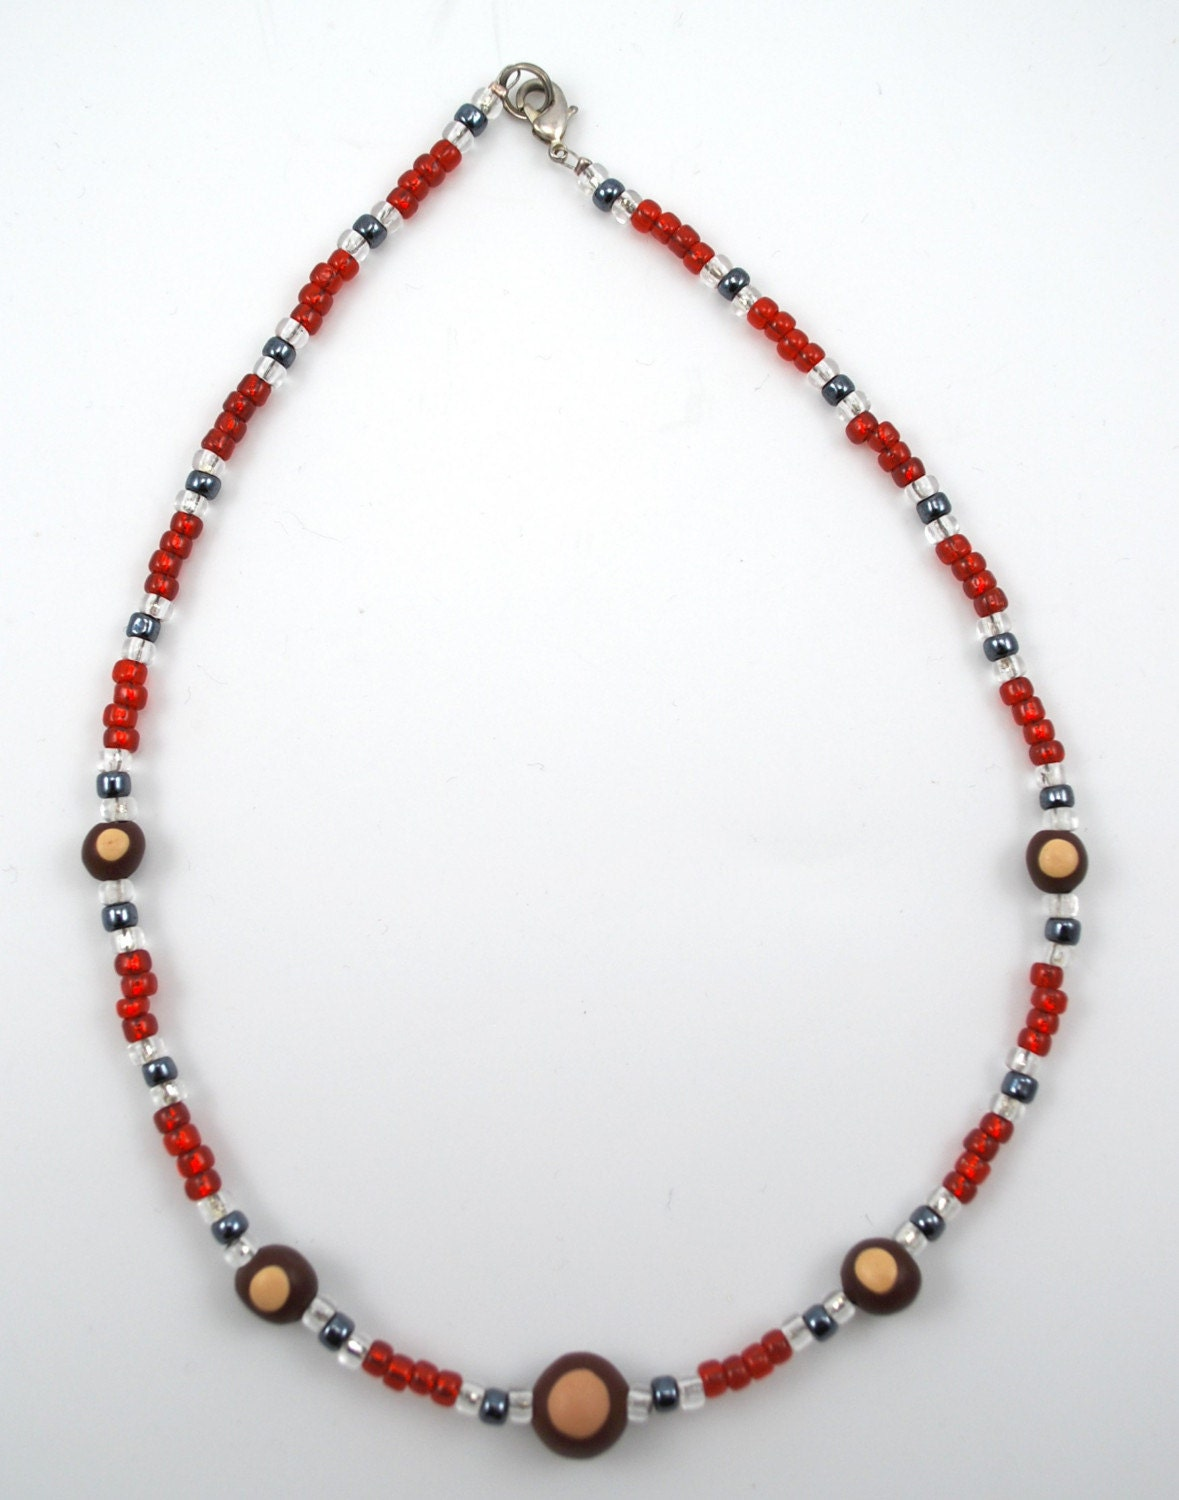 items similar to ohio state buckeye glass bead necklace on